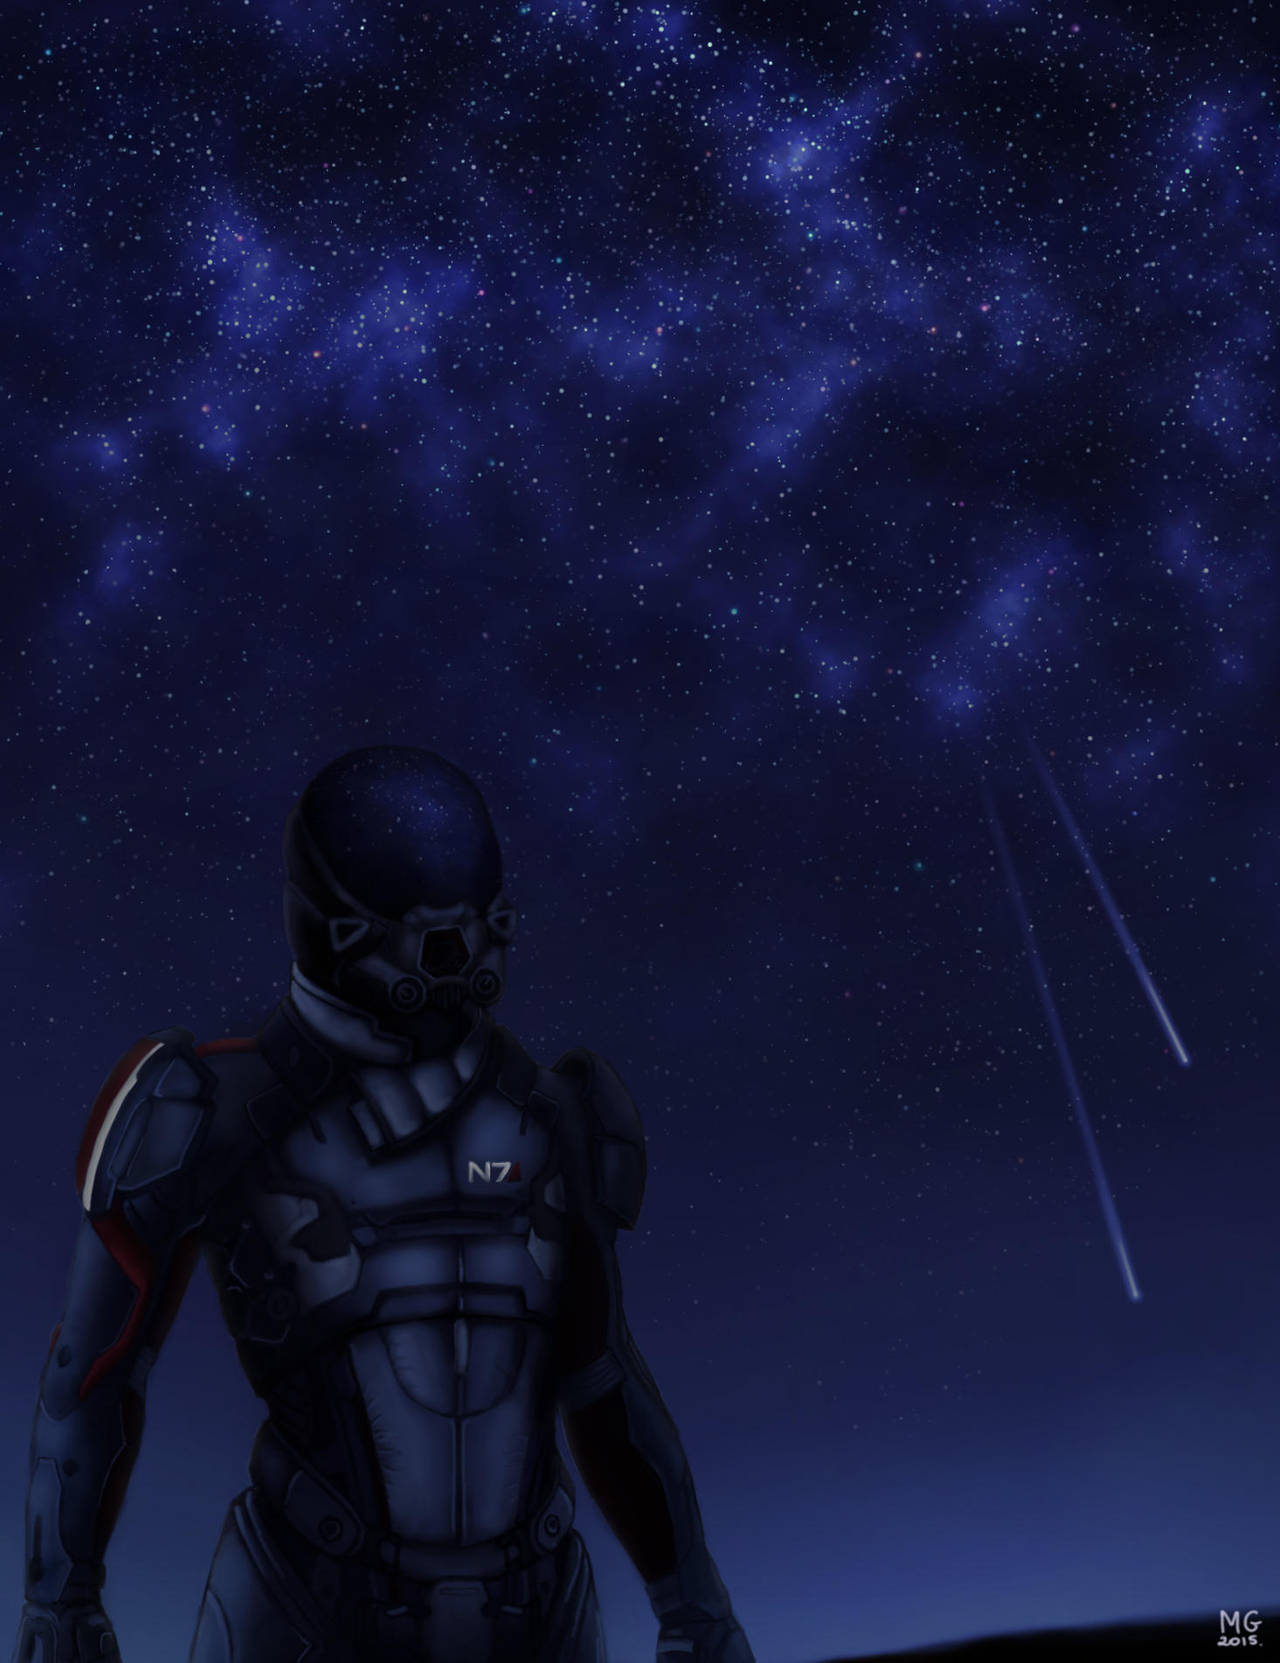 sojourner - Mass Effect: Andromeda fan art by mdzx